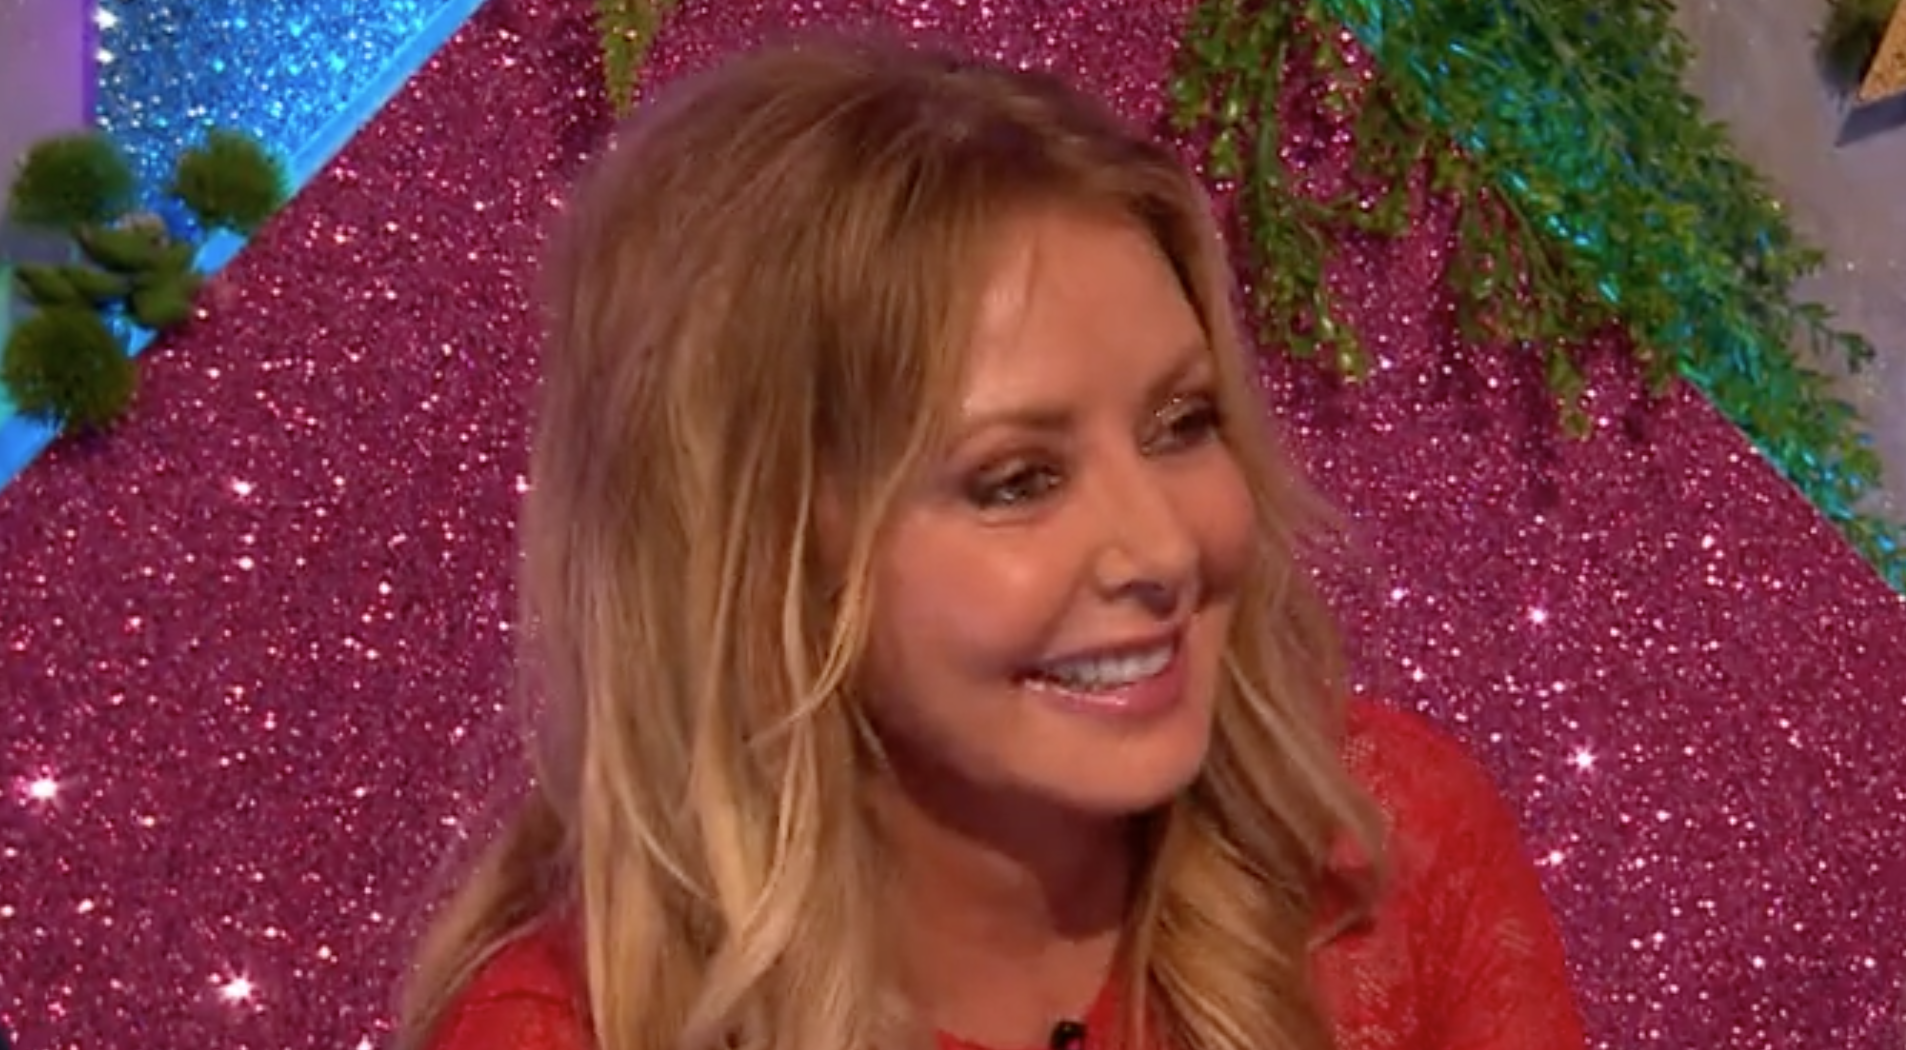 Fans rave about Carol Vorderman's curves as she appears on BGT spin-off